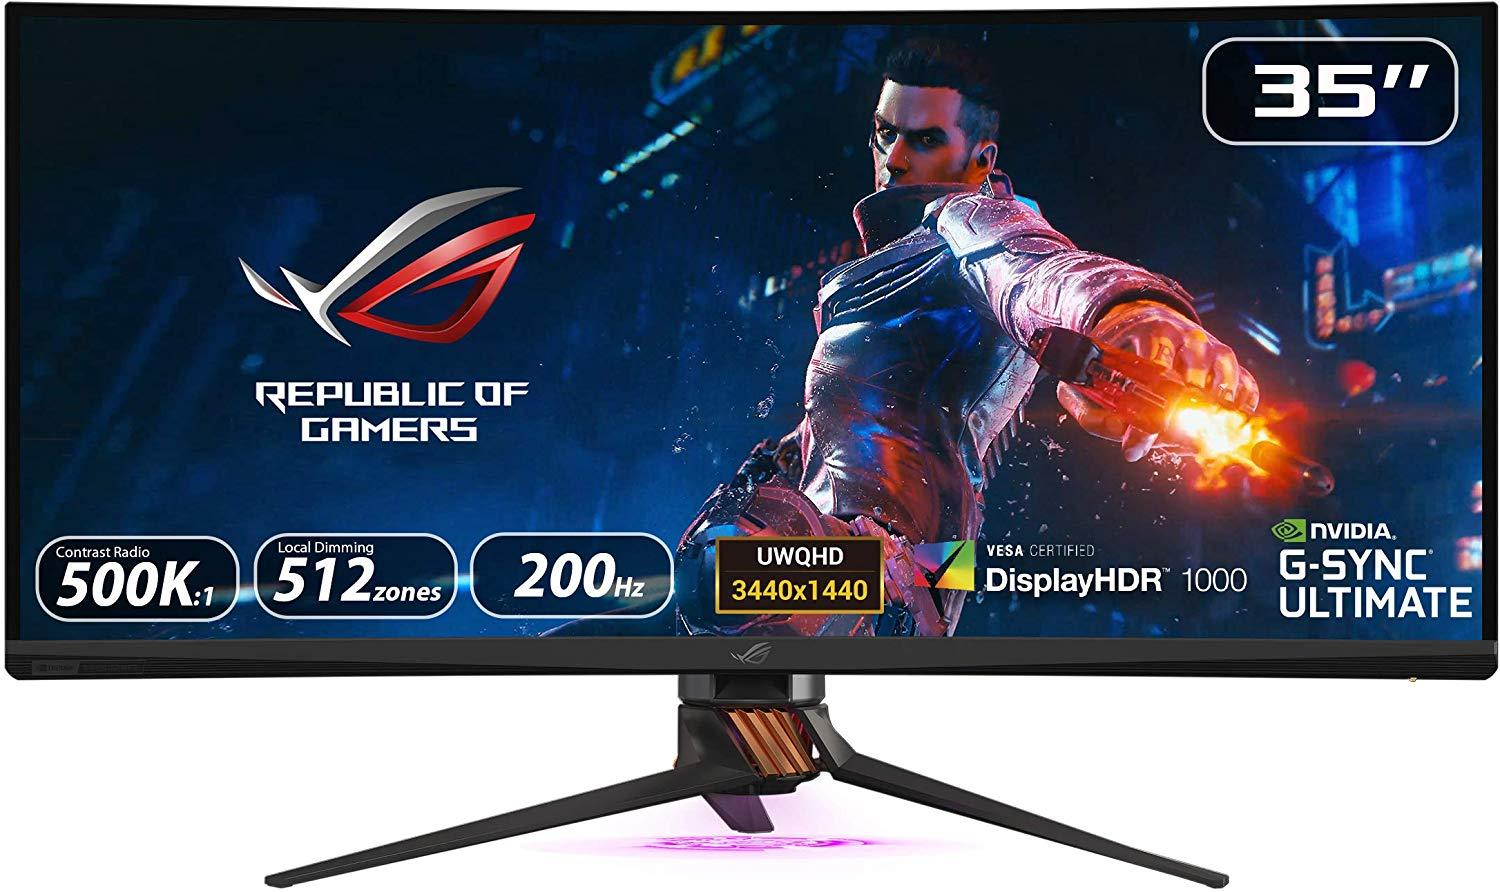 Asus Rog Swift Pg35vq Ultra Wide Hdr Gaming Monitor Store 974 ستور ٩٧٤